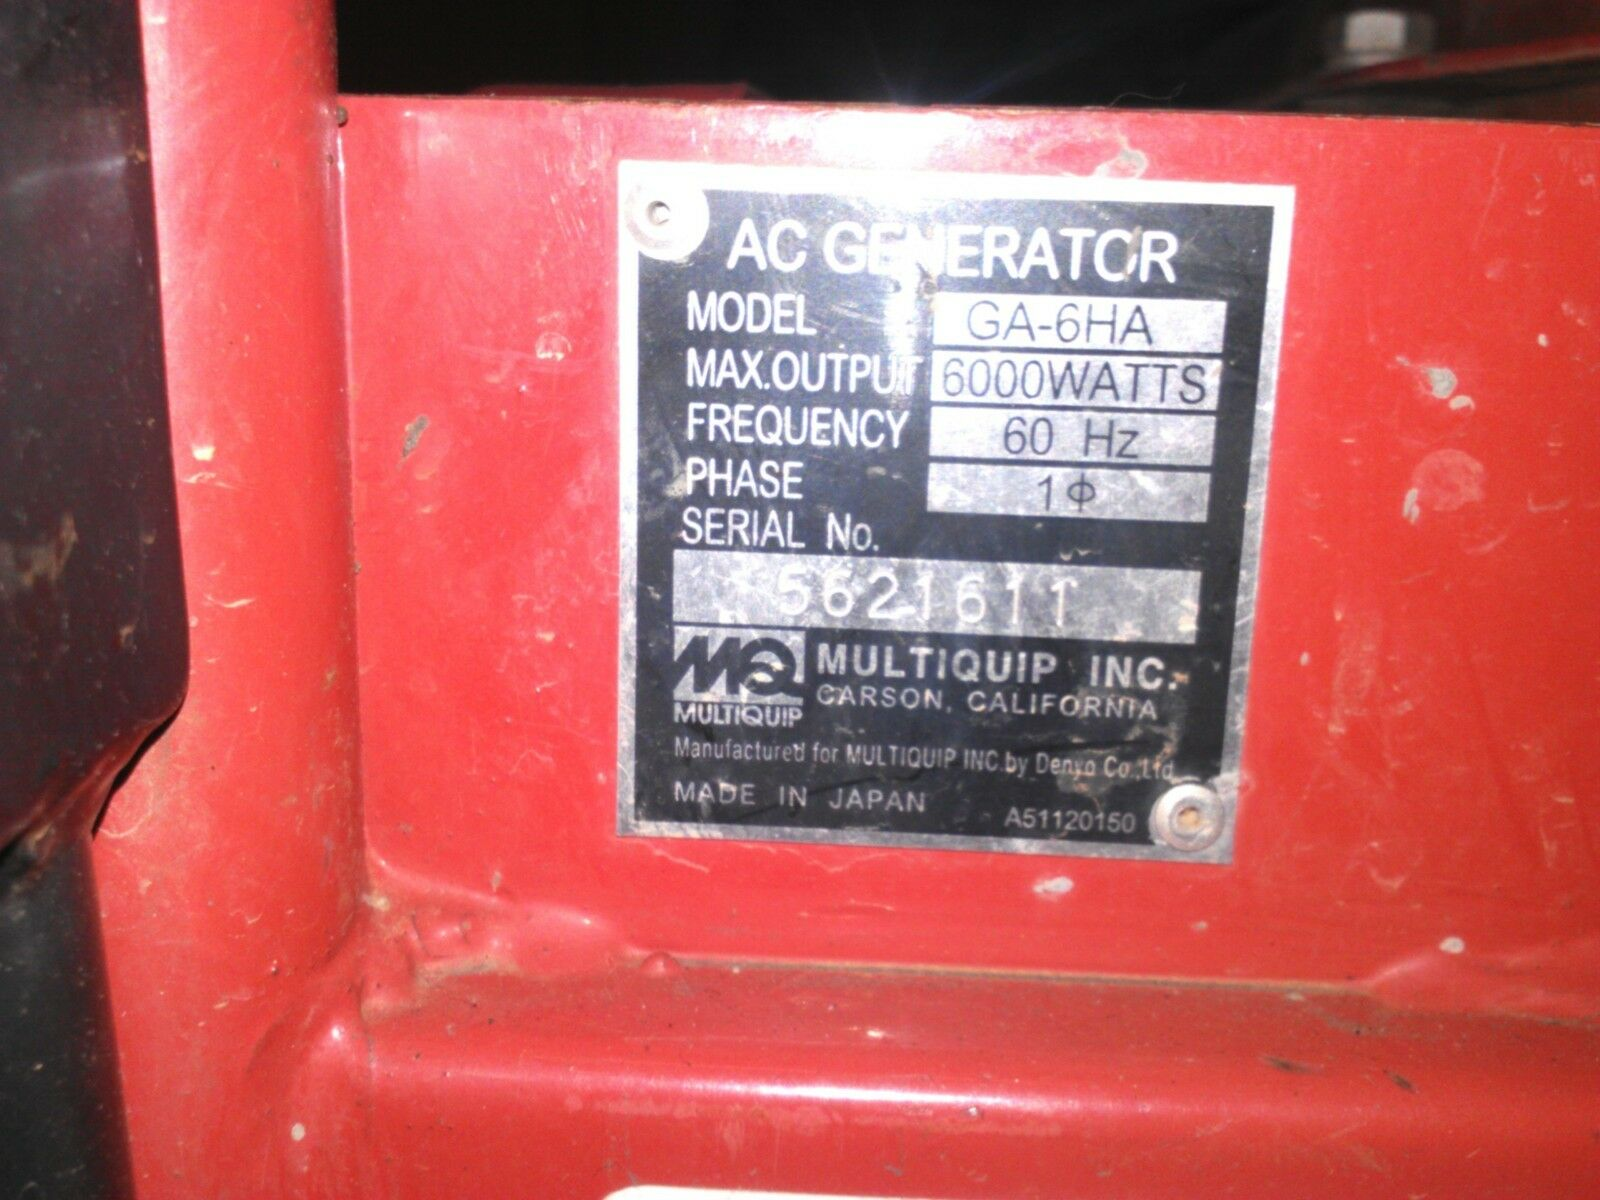 Used 18325ZB4000 PredECTOR FOR MULTIQUIP GA-6HA  -ENTIRE PICTURE NOT FOR SALE